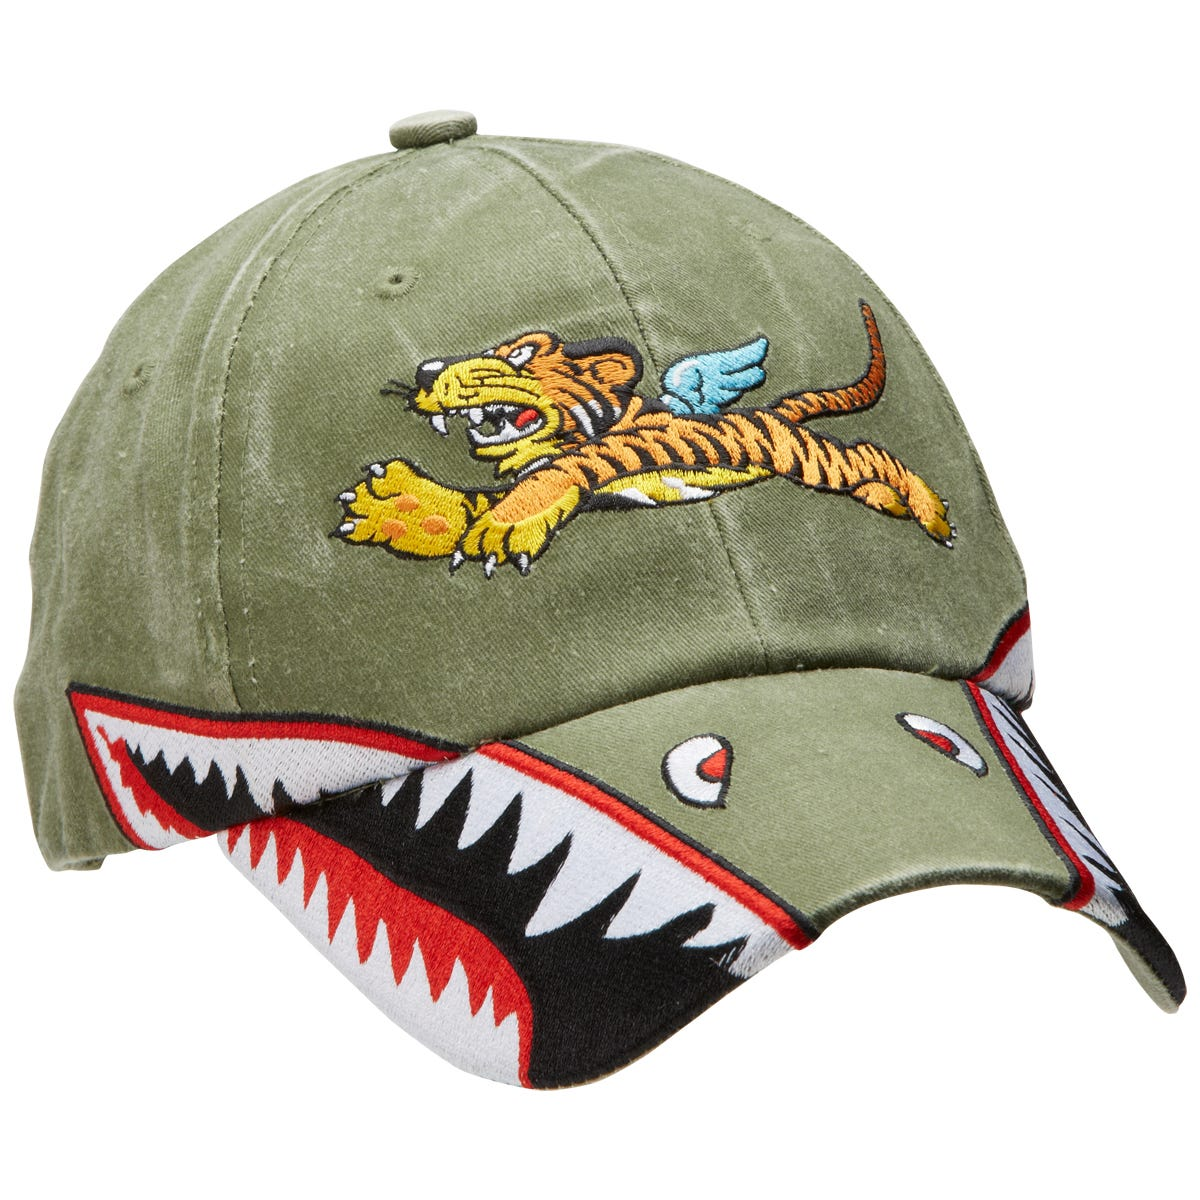 Flying Tigers Cap - from Sporty s Pilot Shop 466d4baa28be